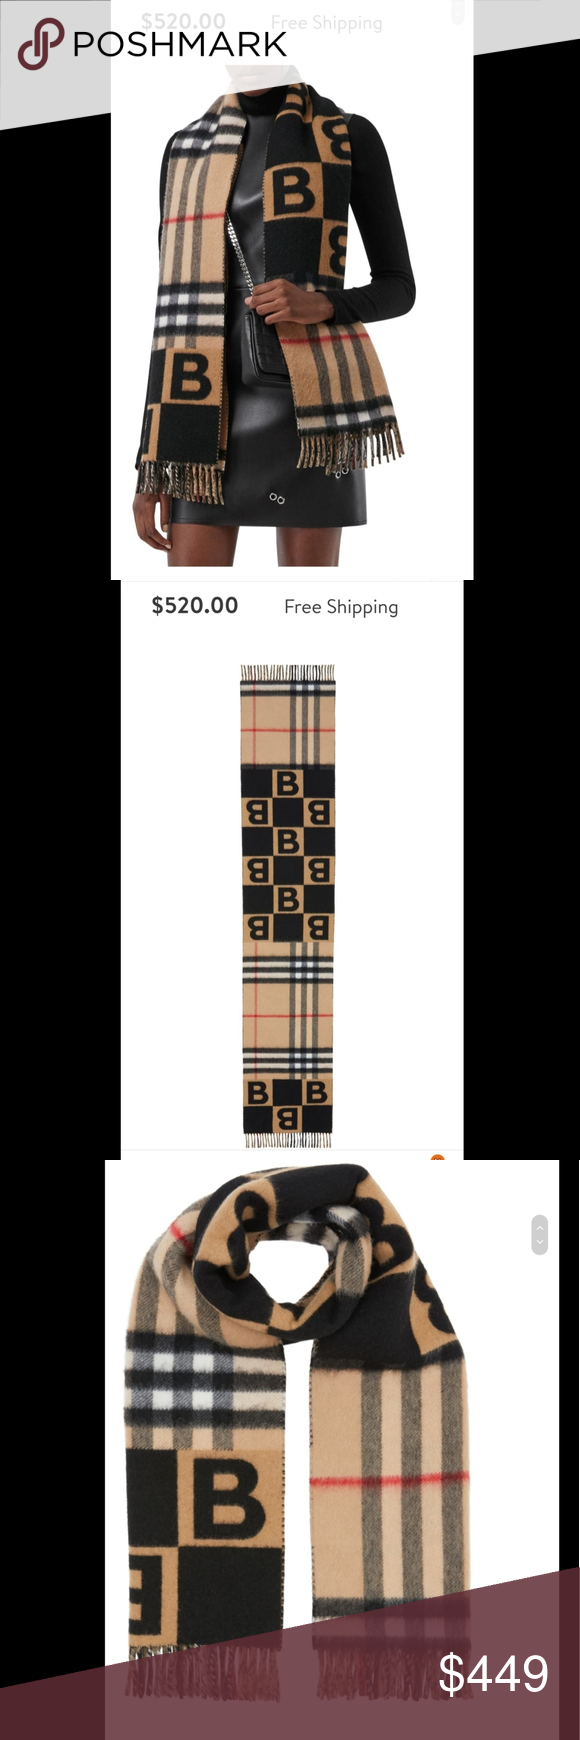 Burberry B Scarf New with tags Accessories Scarves & Wraps